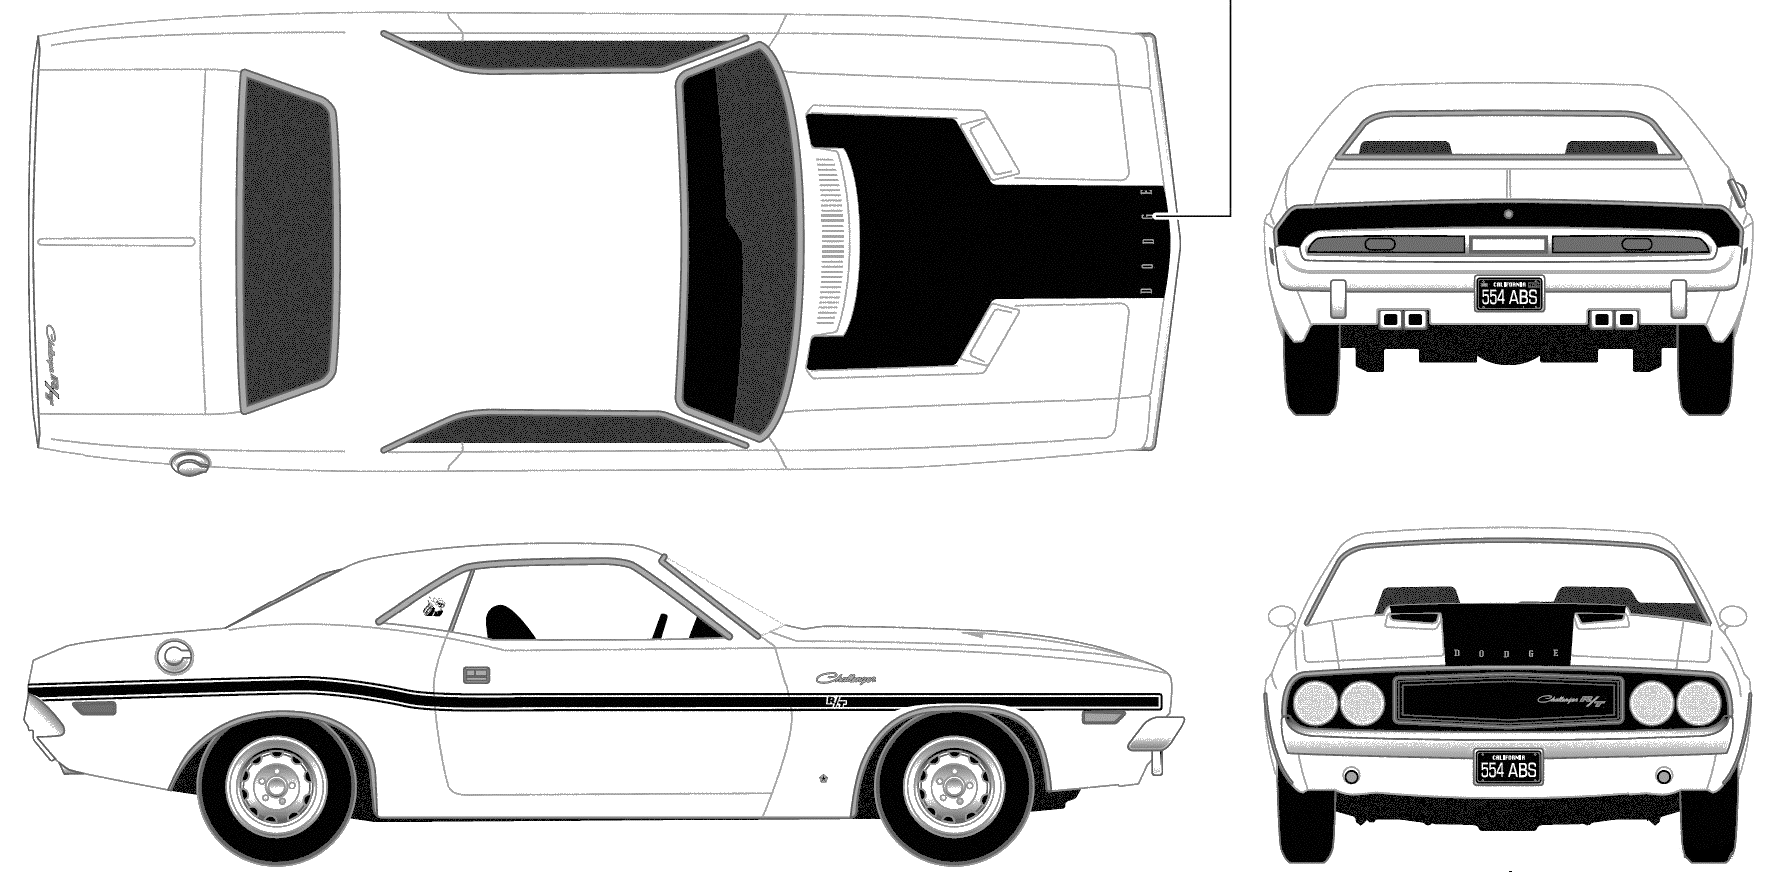 Exceptional Dodge Challenger Blueprint